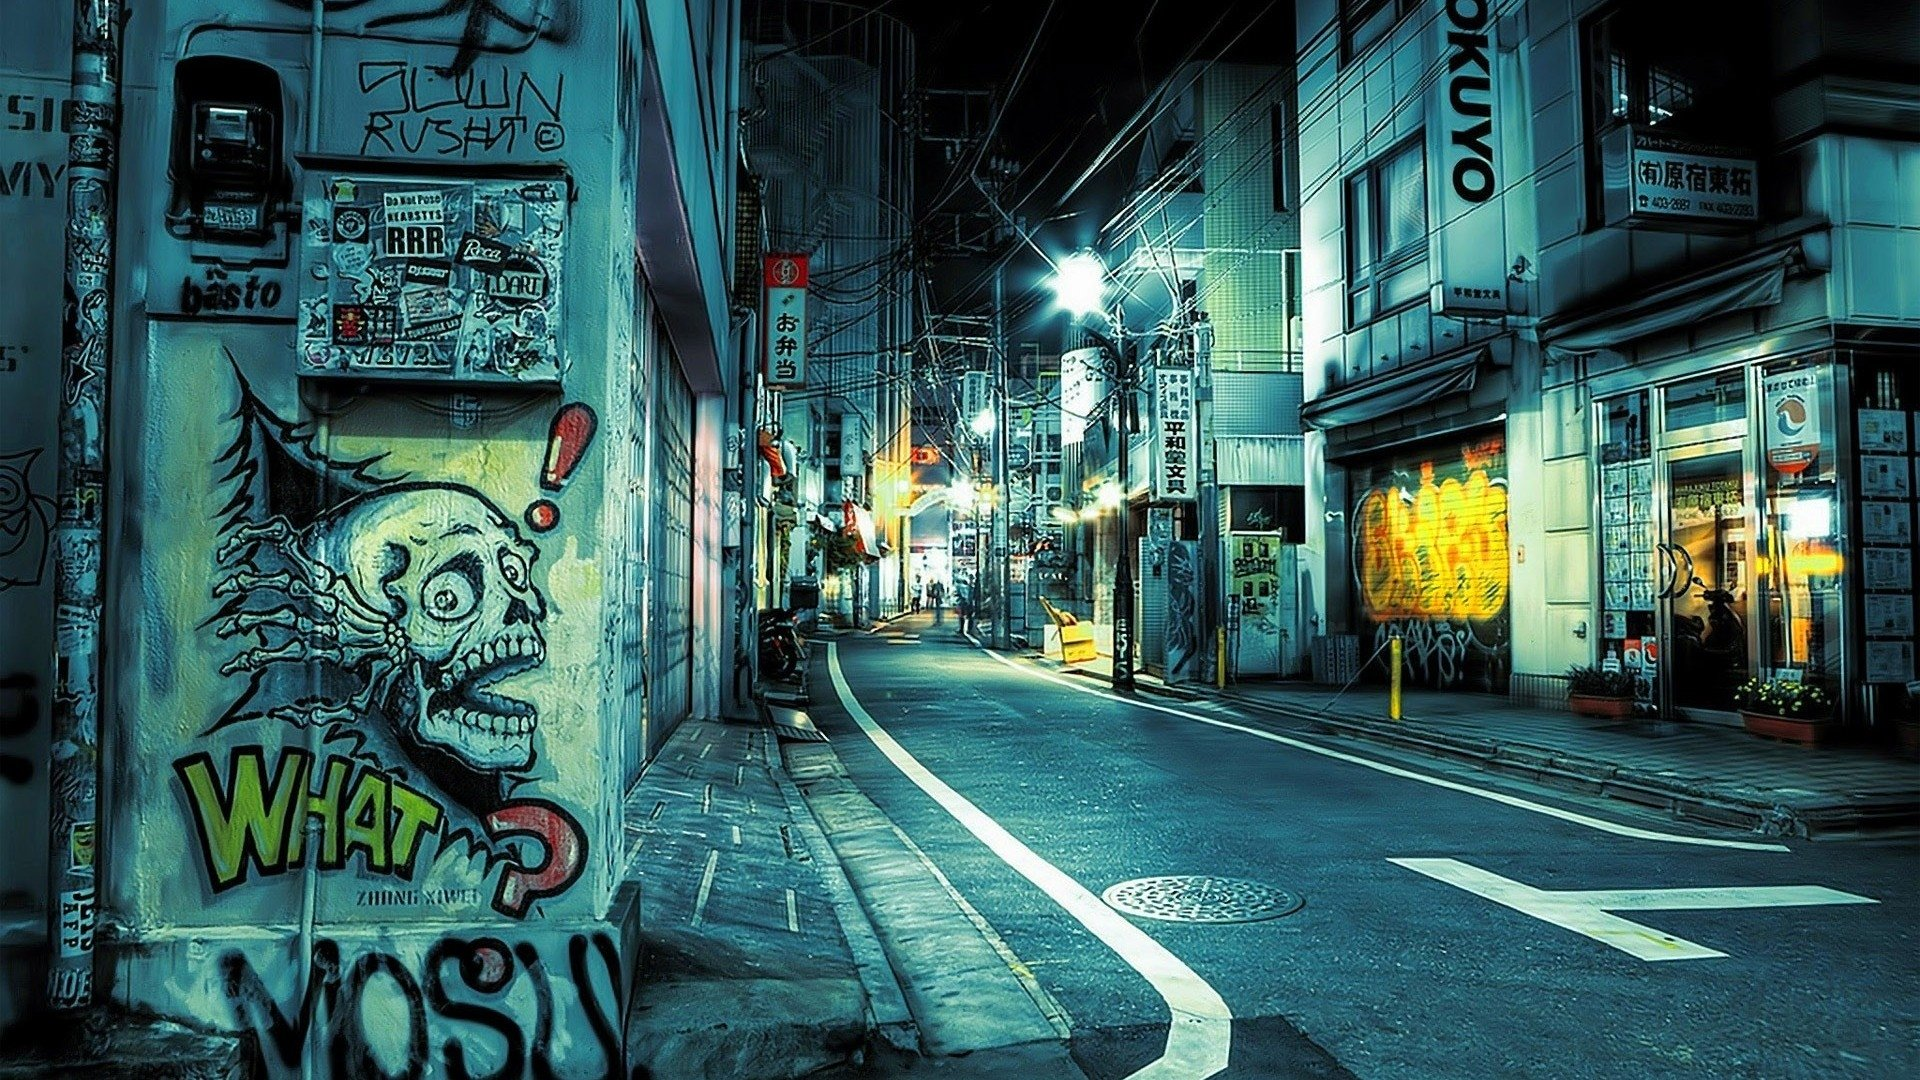 Street HD Wallpaper